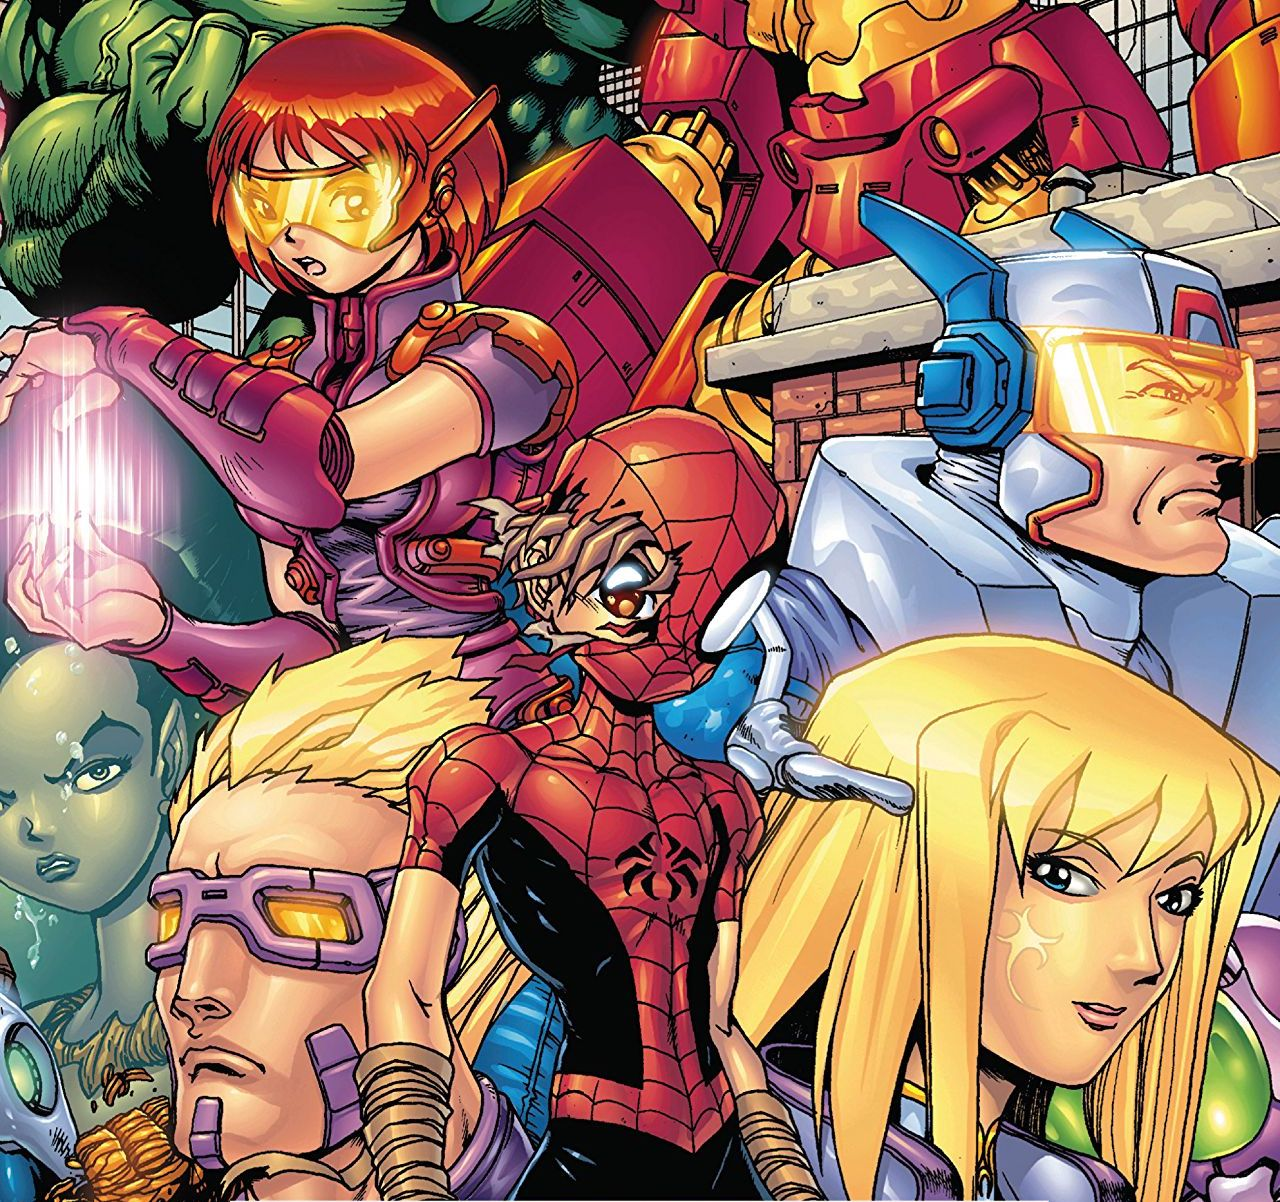 The mangaverse is a mixtape that'll please many.